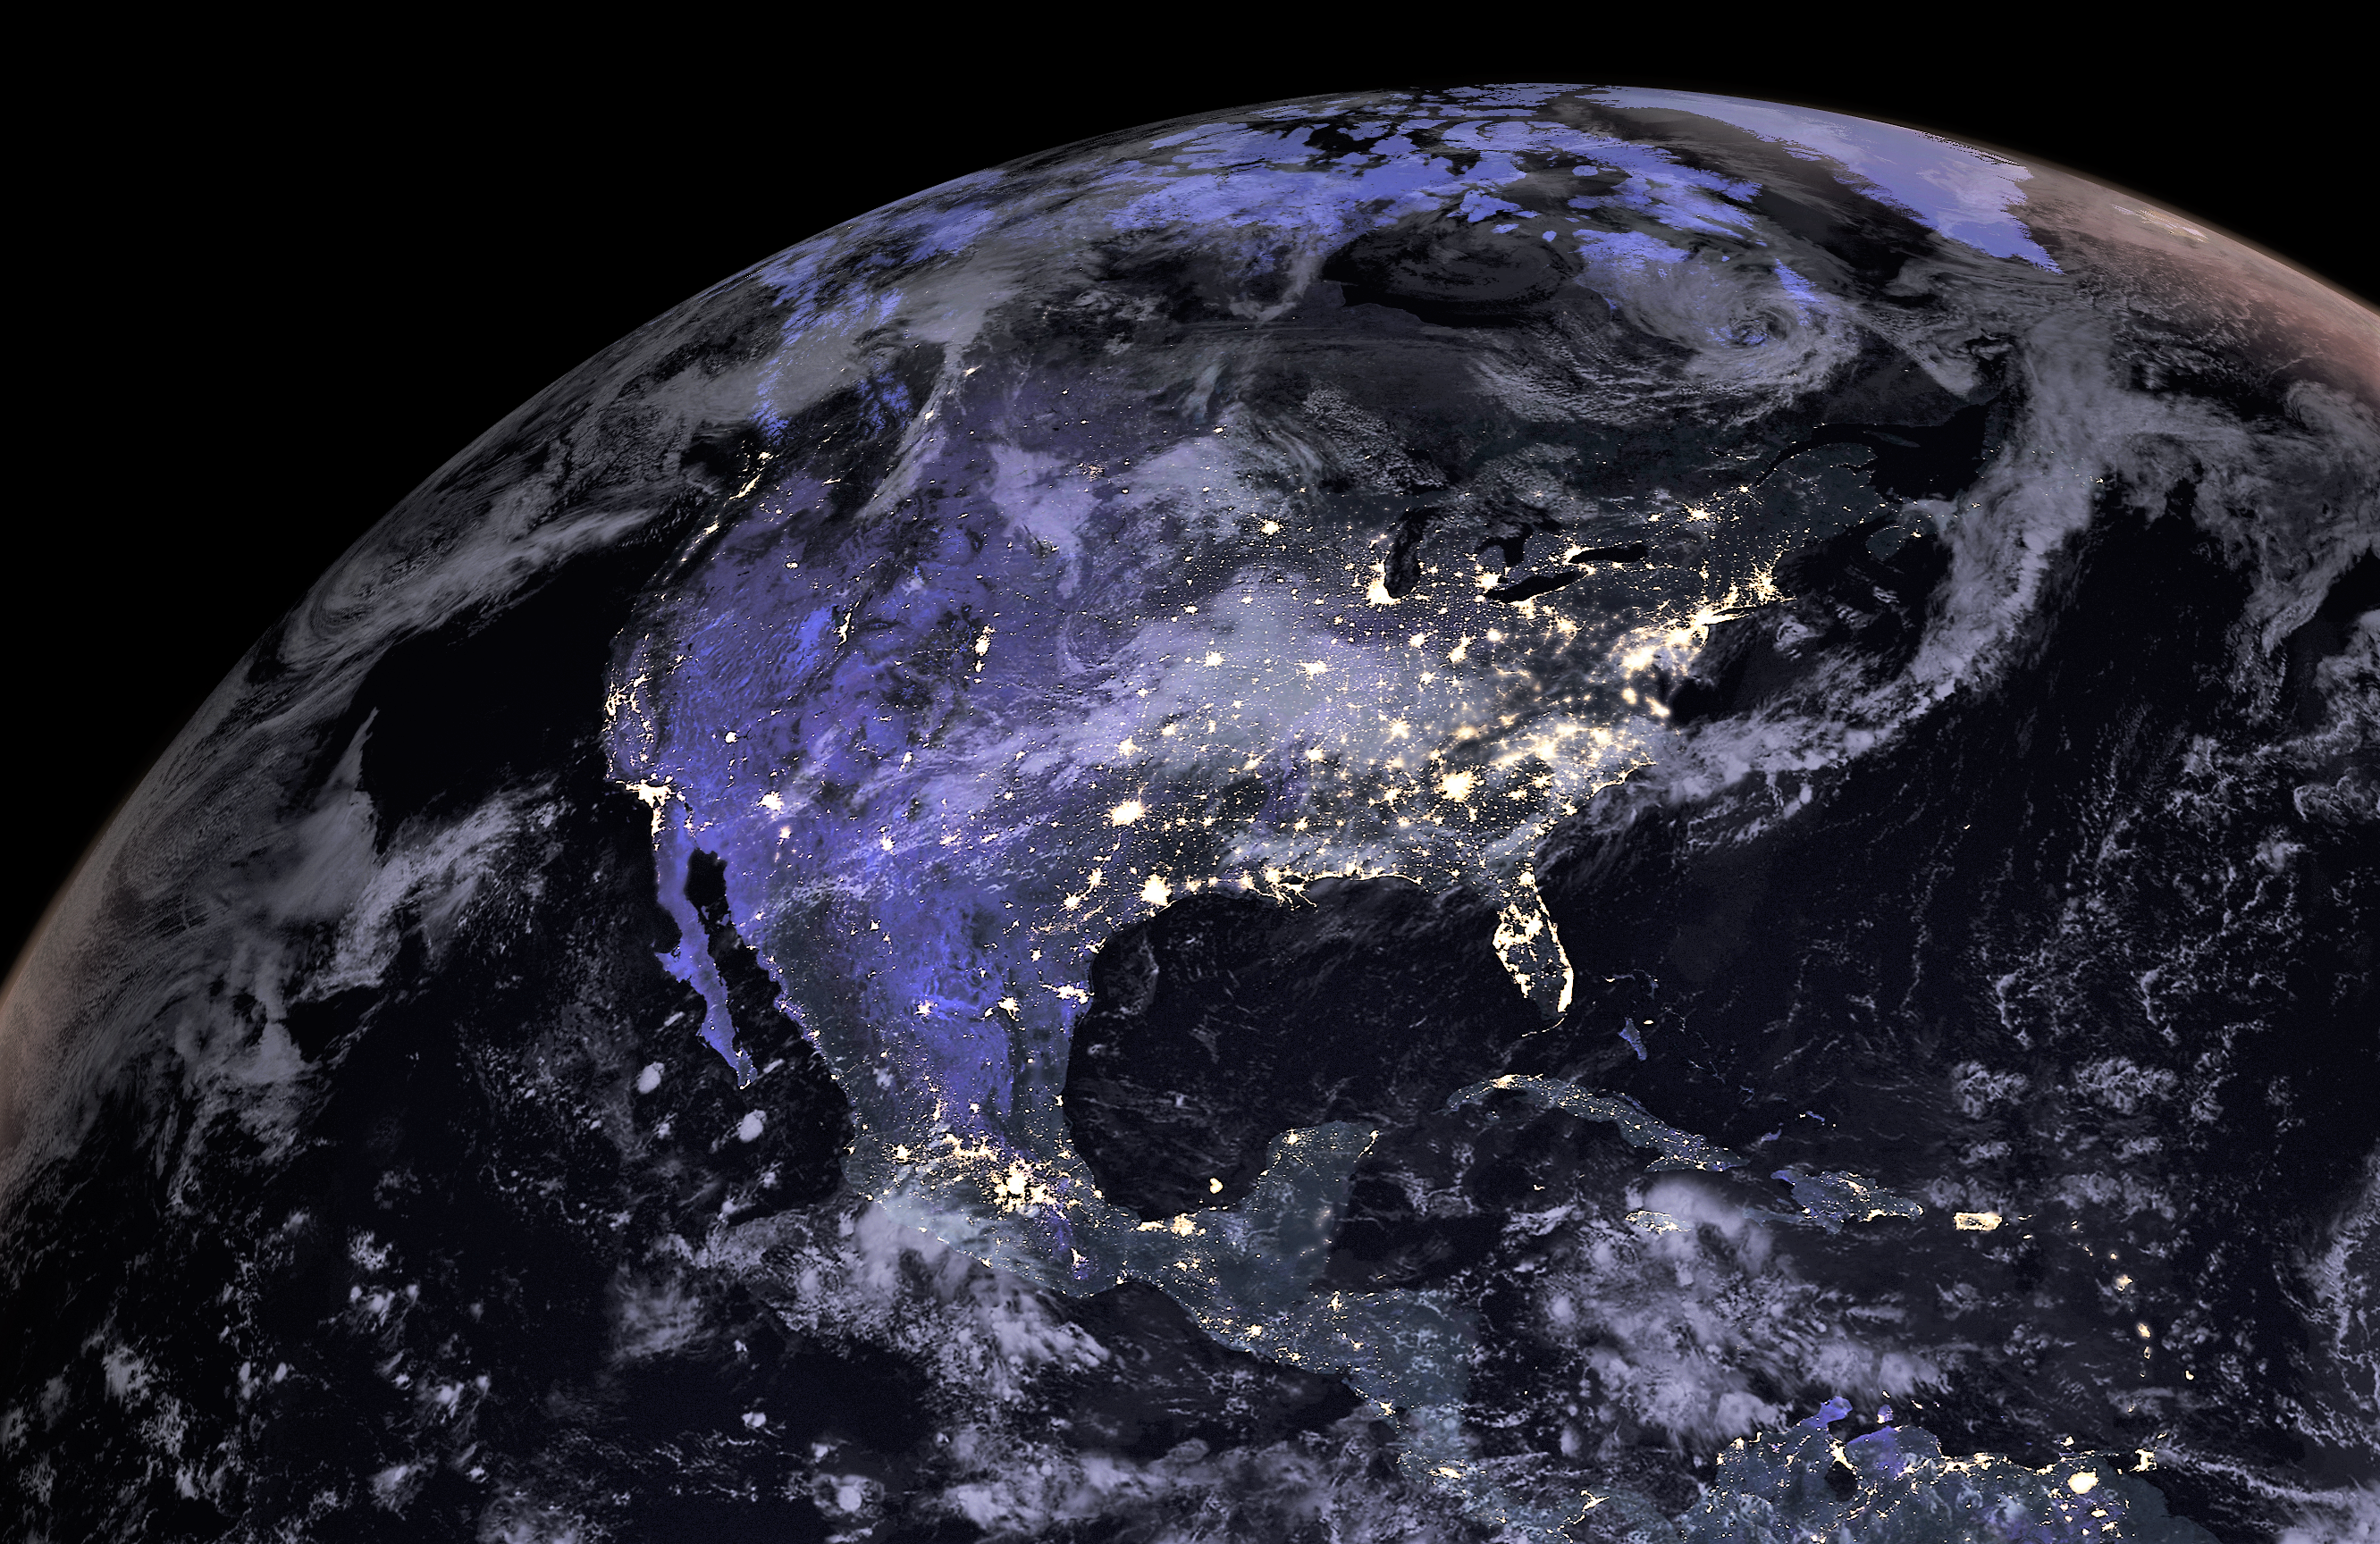 Amazon S Project Kuiper Aims To Offer Satellite Broadband Access Geekwire